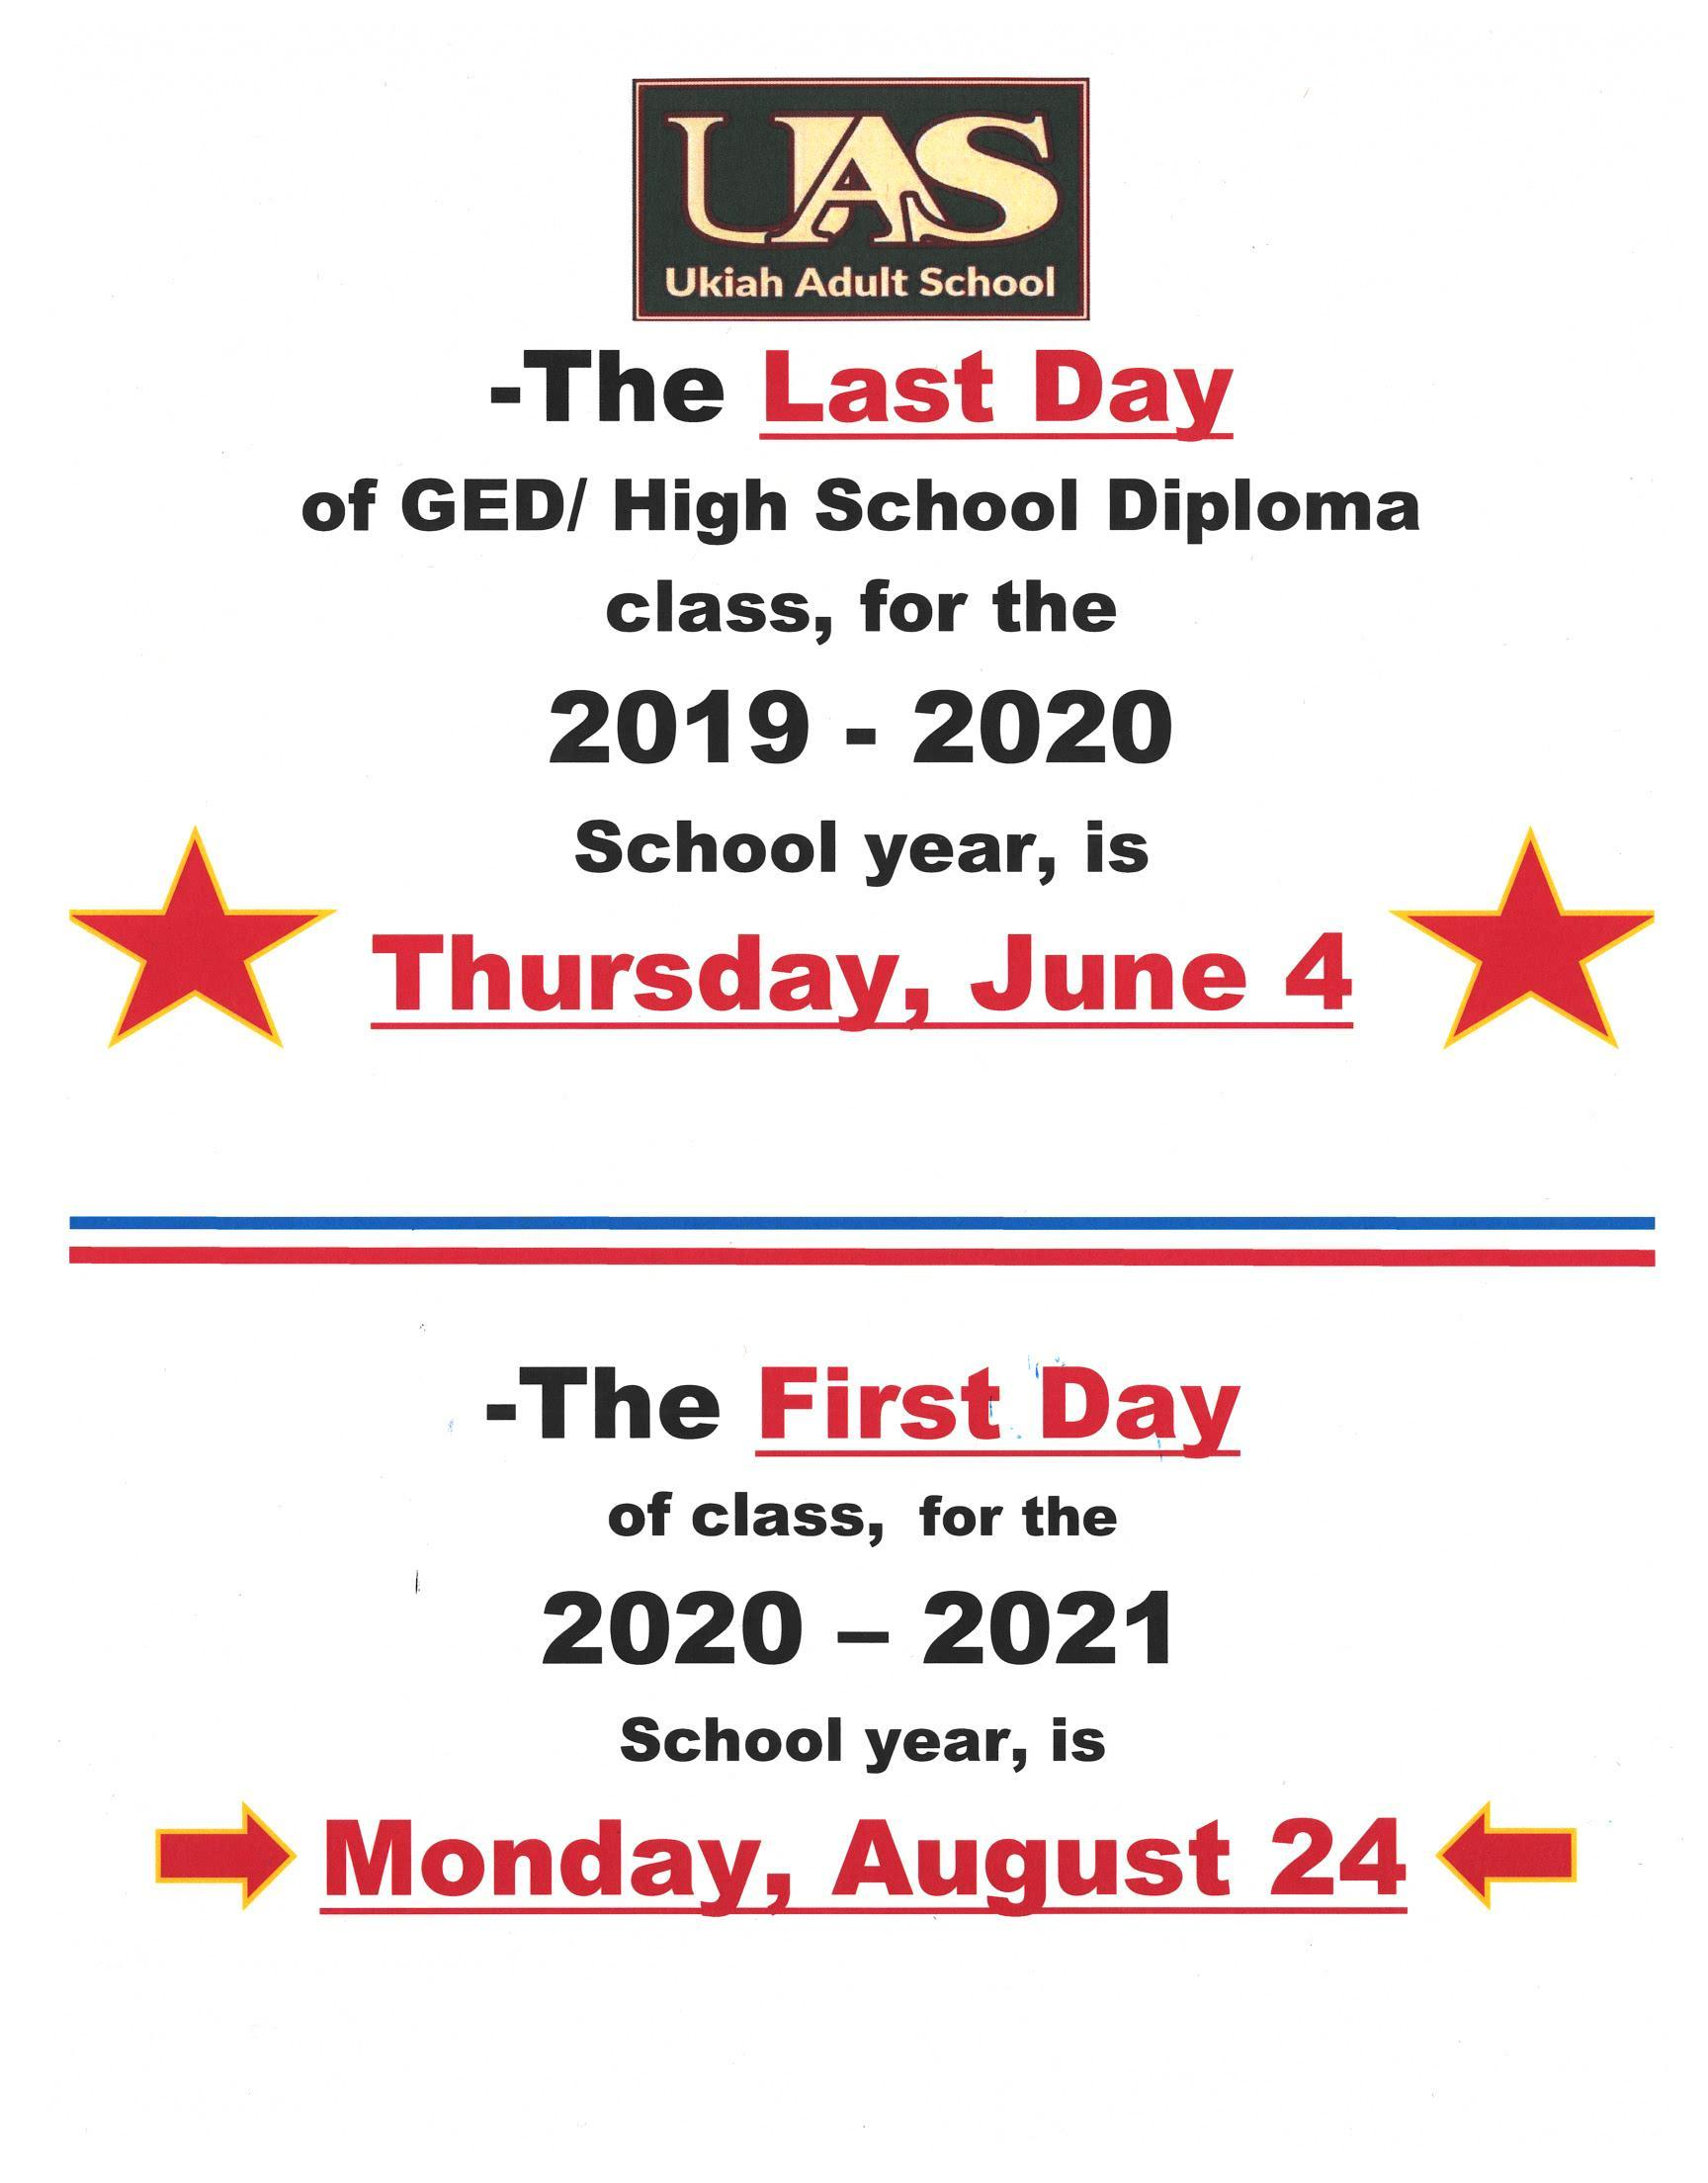 Last day of school for 2019-2020 is June 4, 2020. First day for 2020-2021 school year is August 24, 2020 poster